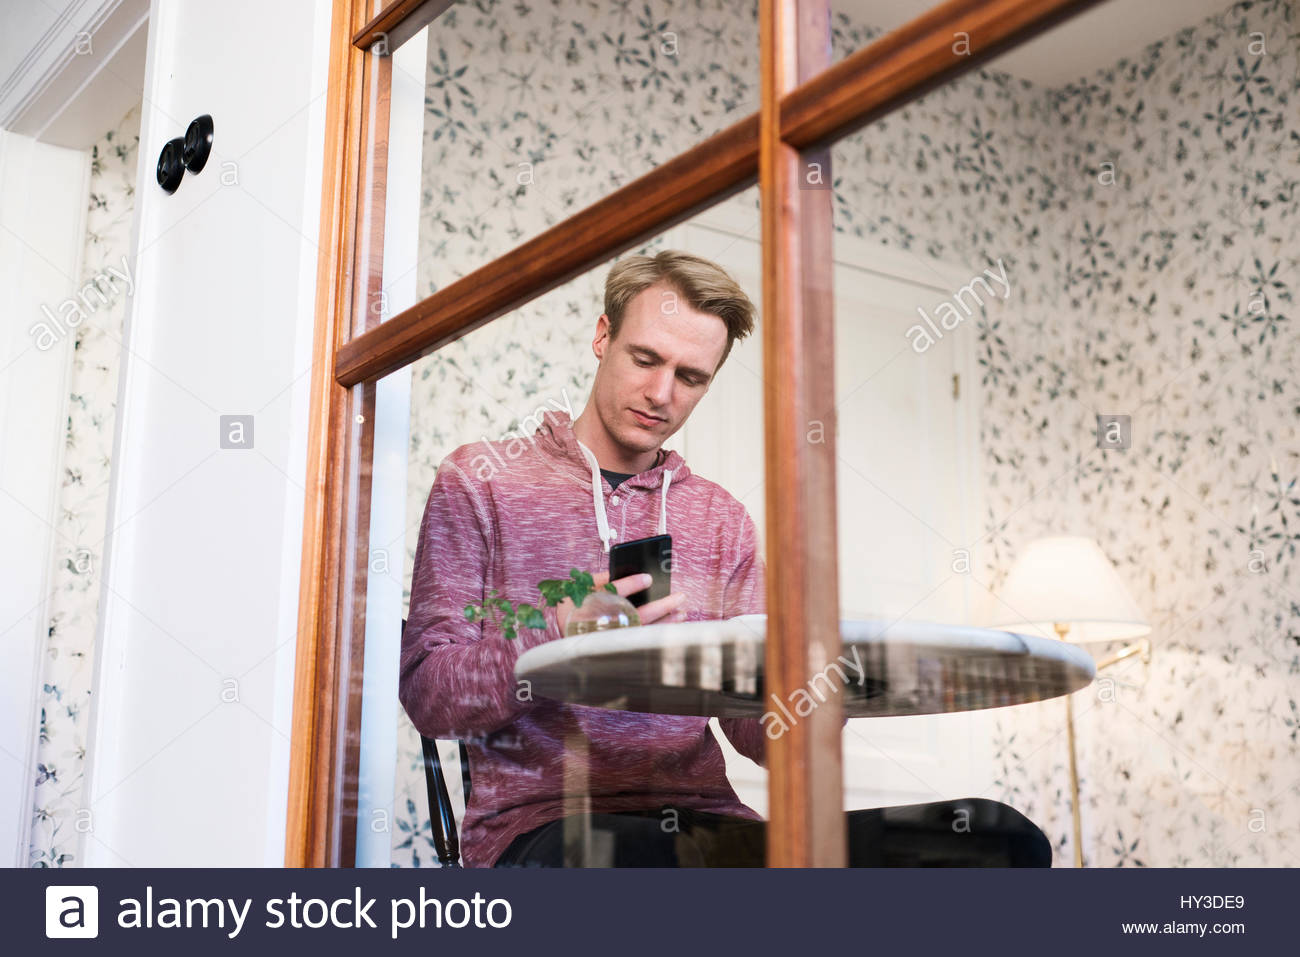 Sweden, Man sitting at table and using smart phone in cafe - Stock Image